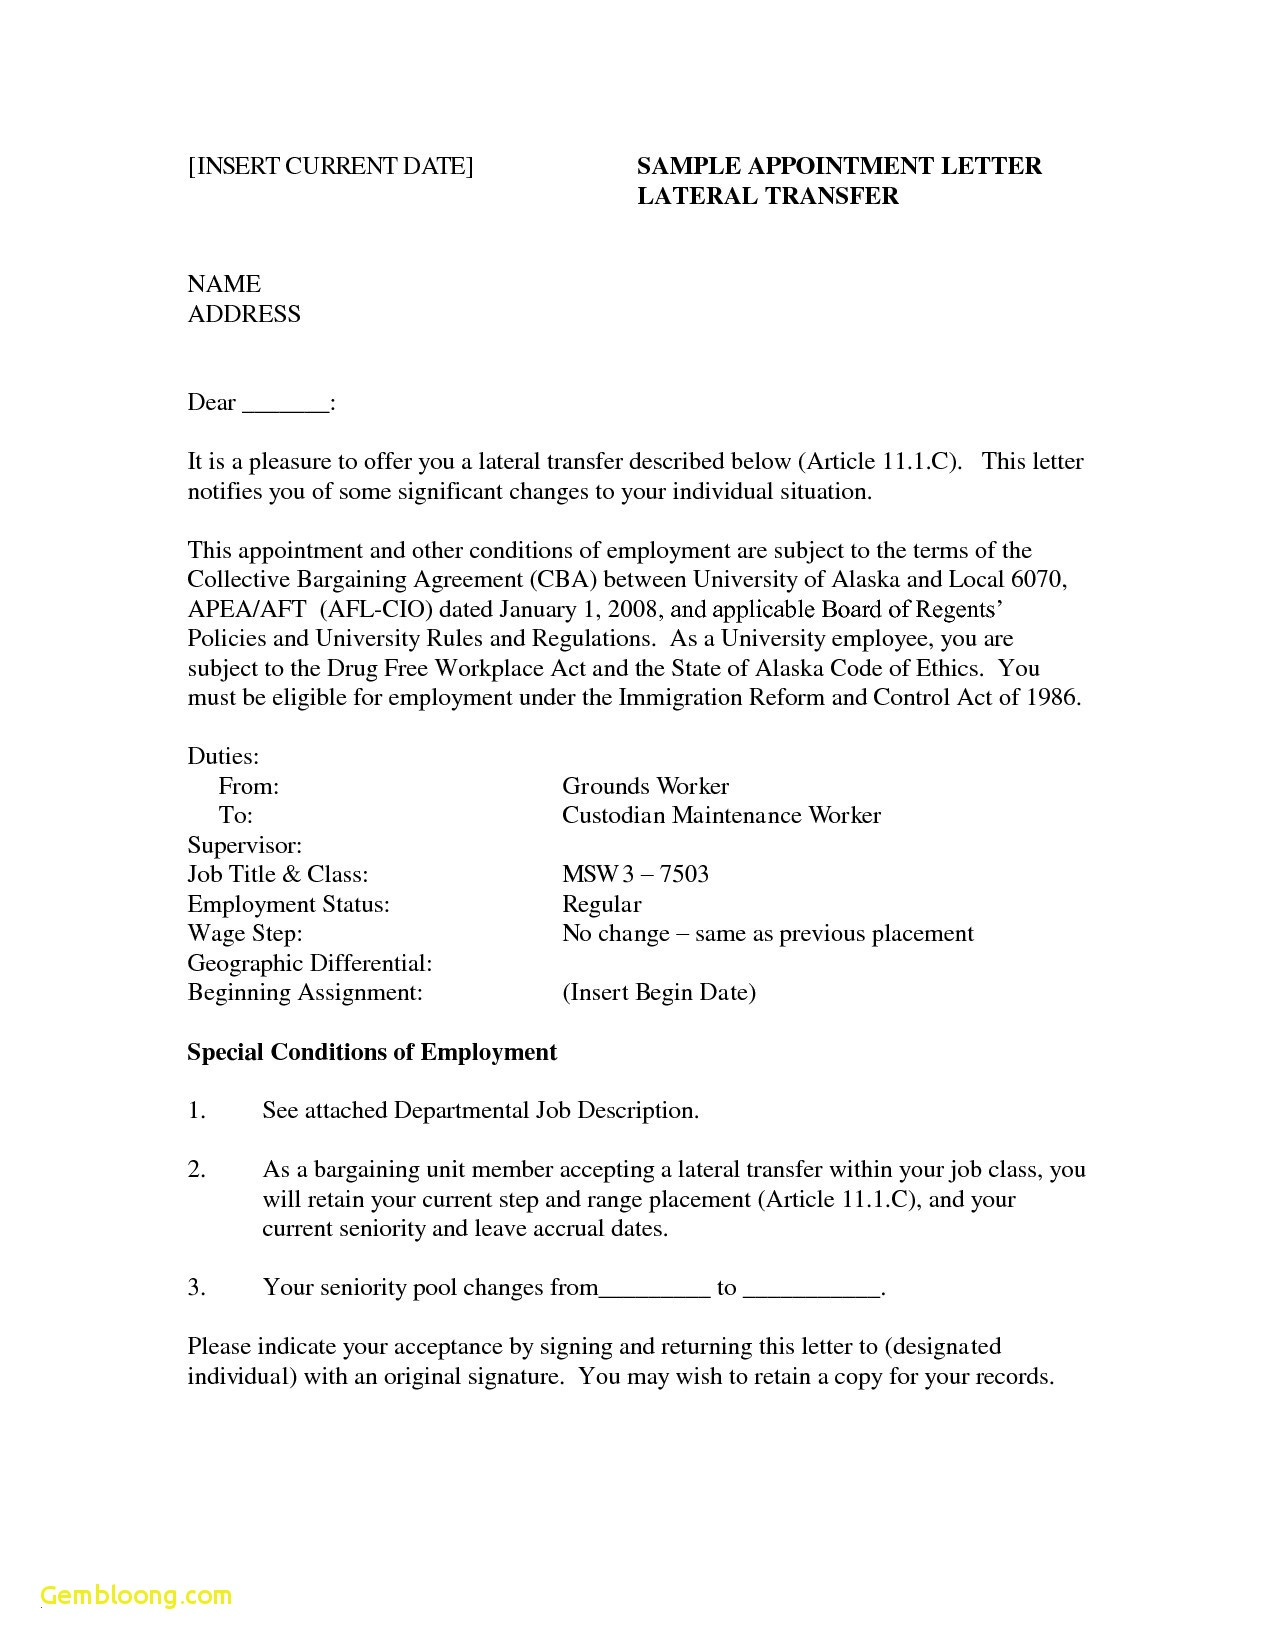 Proof Of Employment Letter Template Word - Resume Template with Picture Insert Legalsocialmobilitypartnership